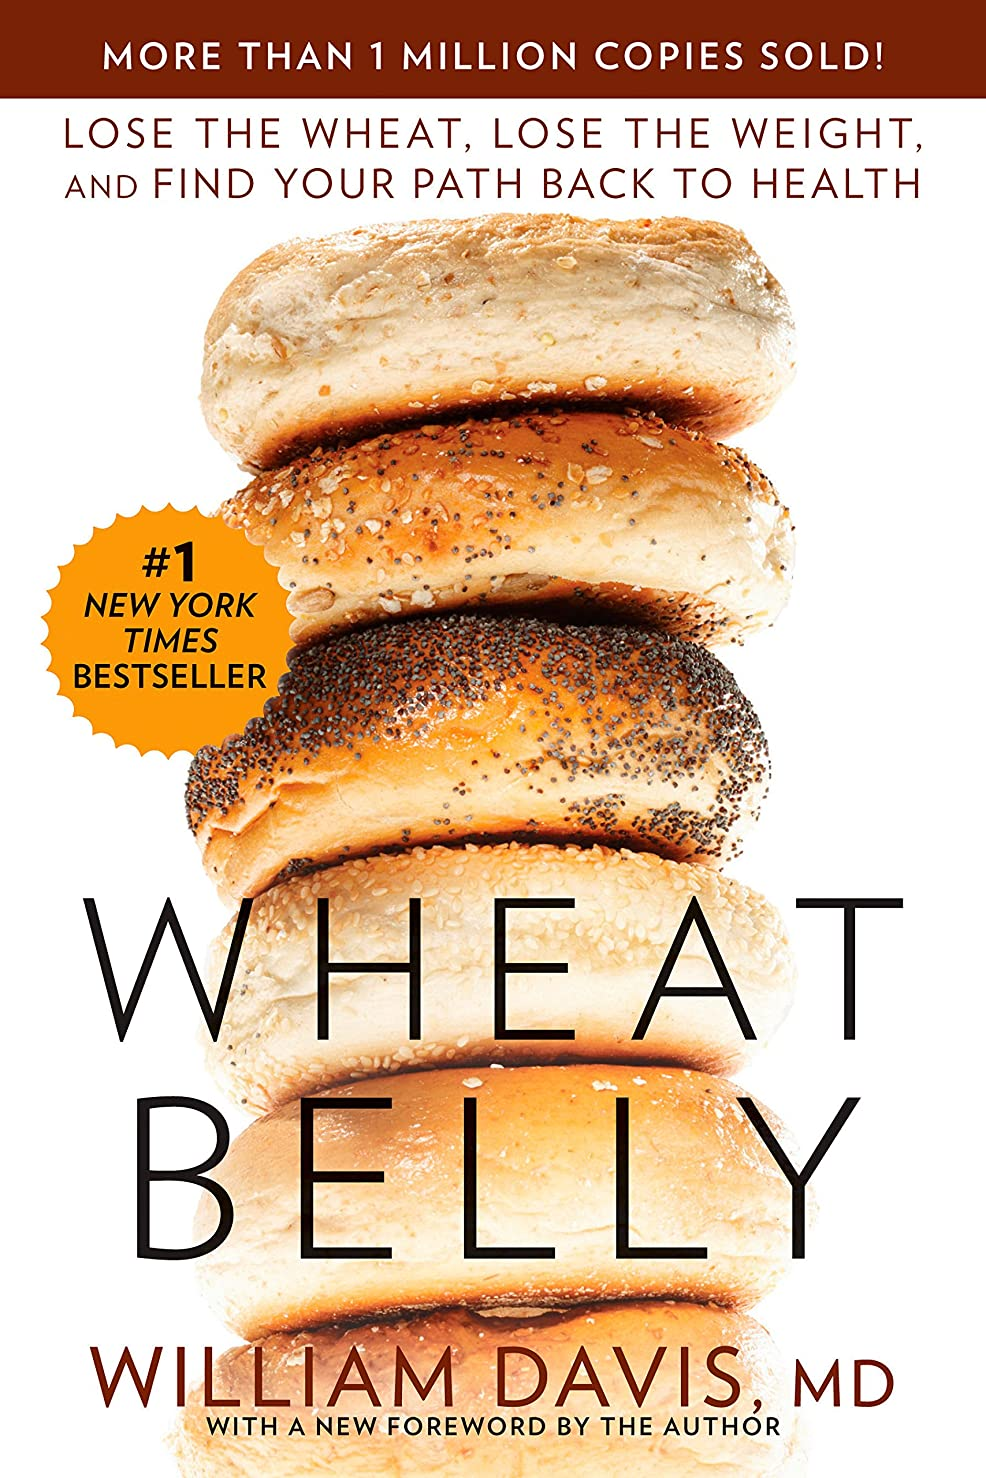 学者マイクロ黒くするWheat Belly: Lose the Wheat, Lose the Weight, and Find Your Path Back to Health (English Edition)